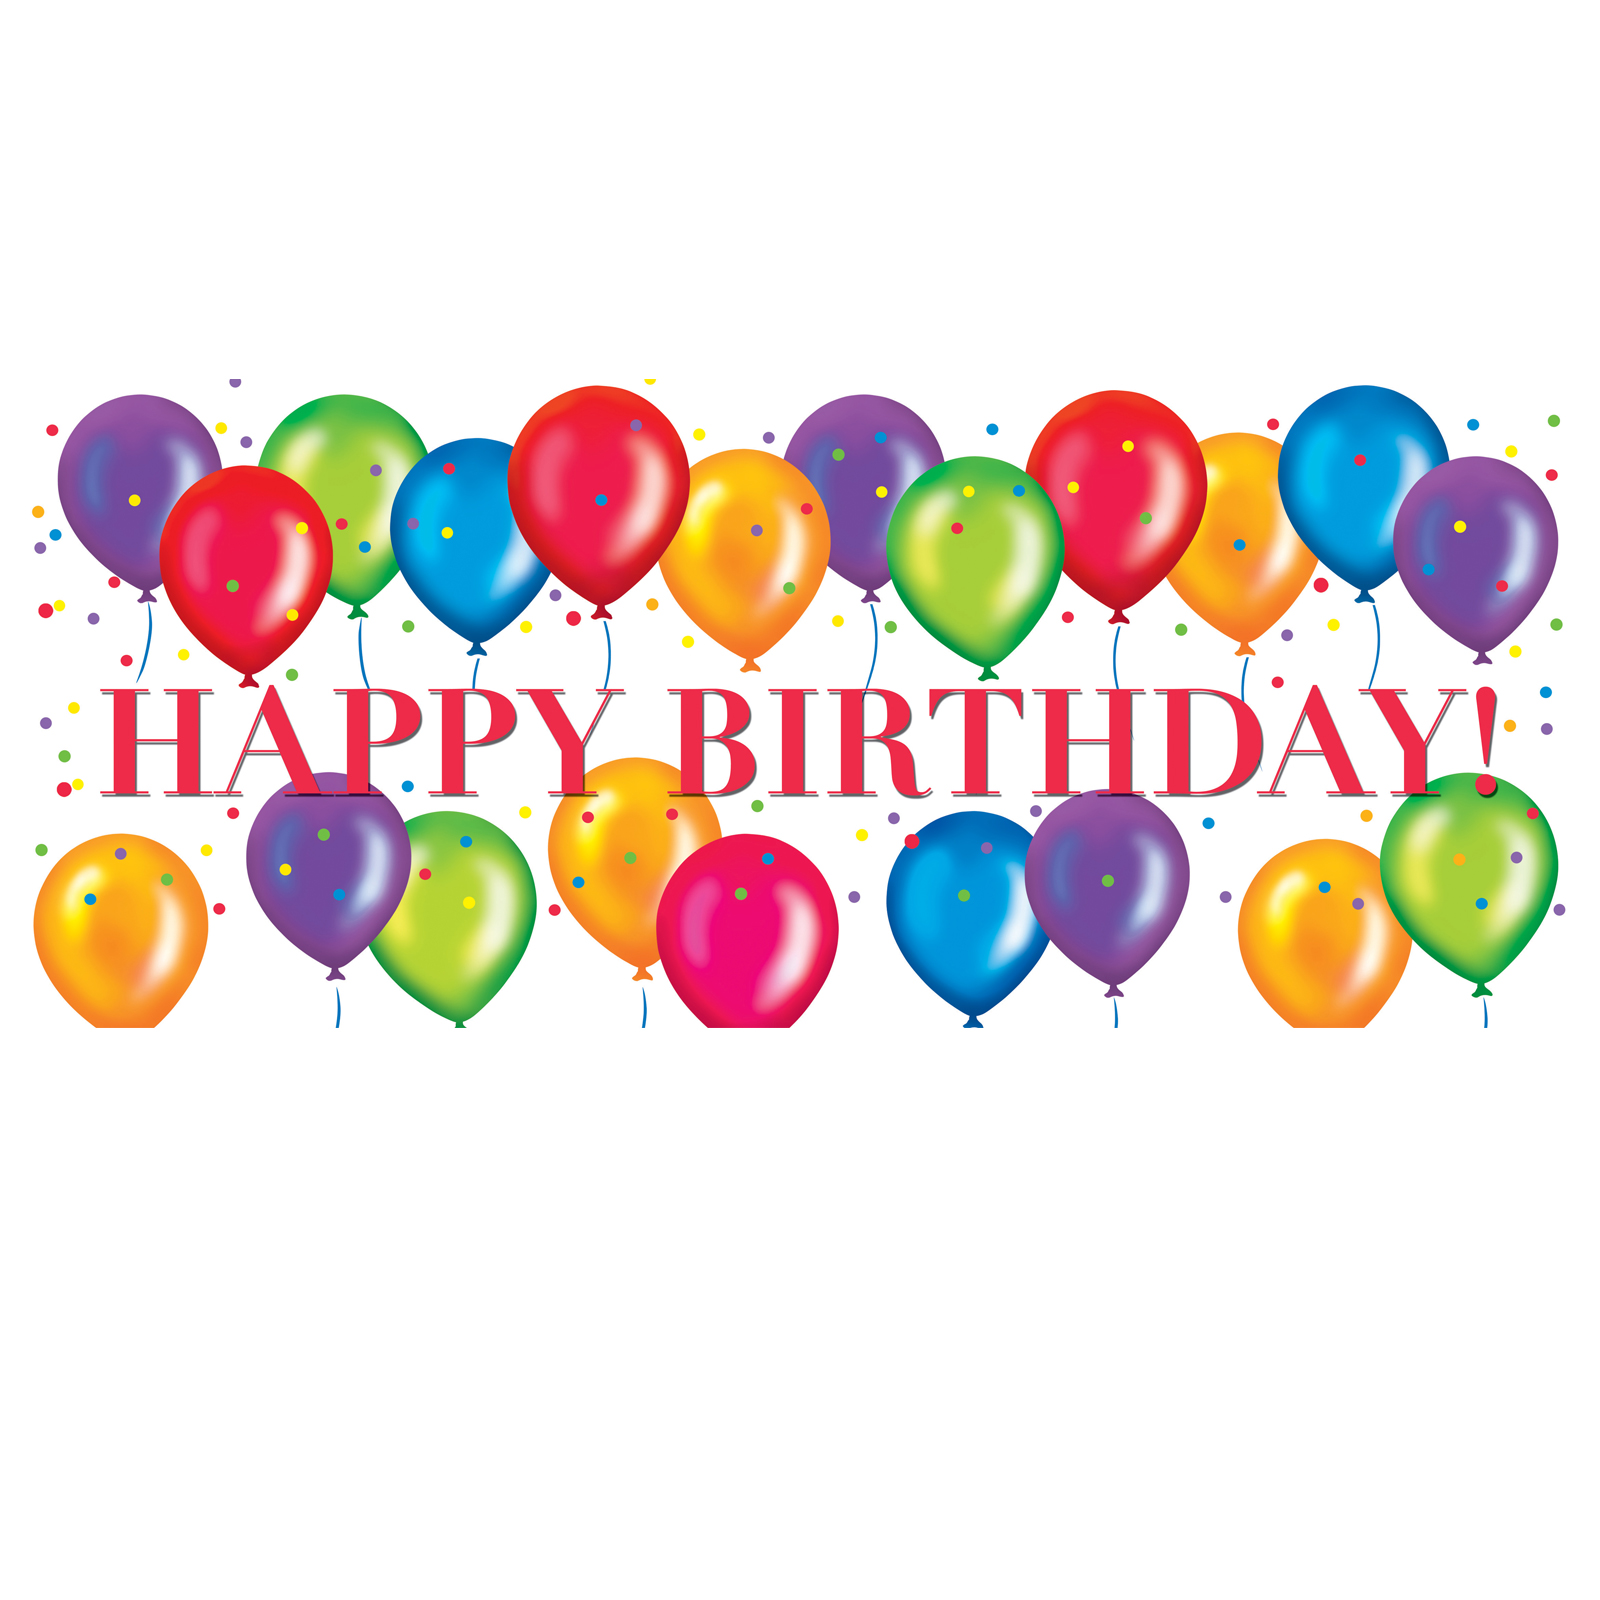 clipart birthday cake and balloons ; Free-clipart-birthday-balloons-clipartfest